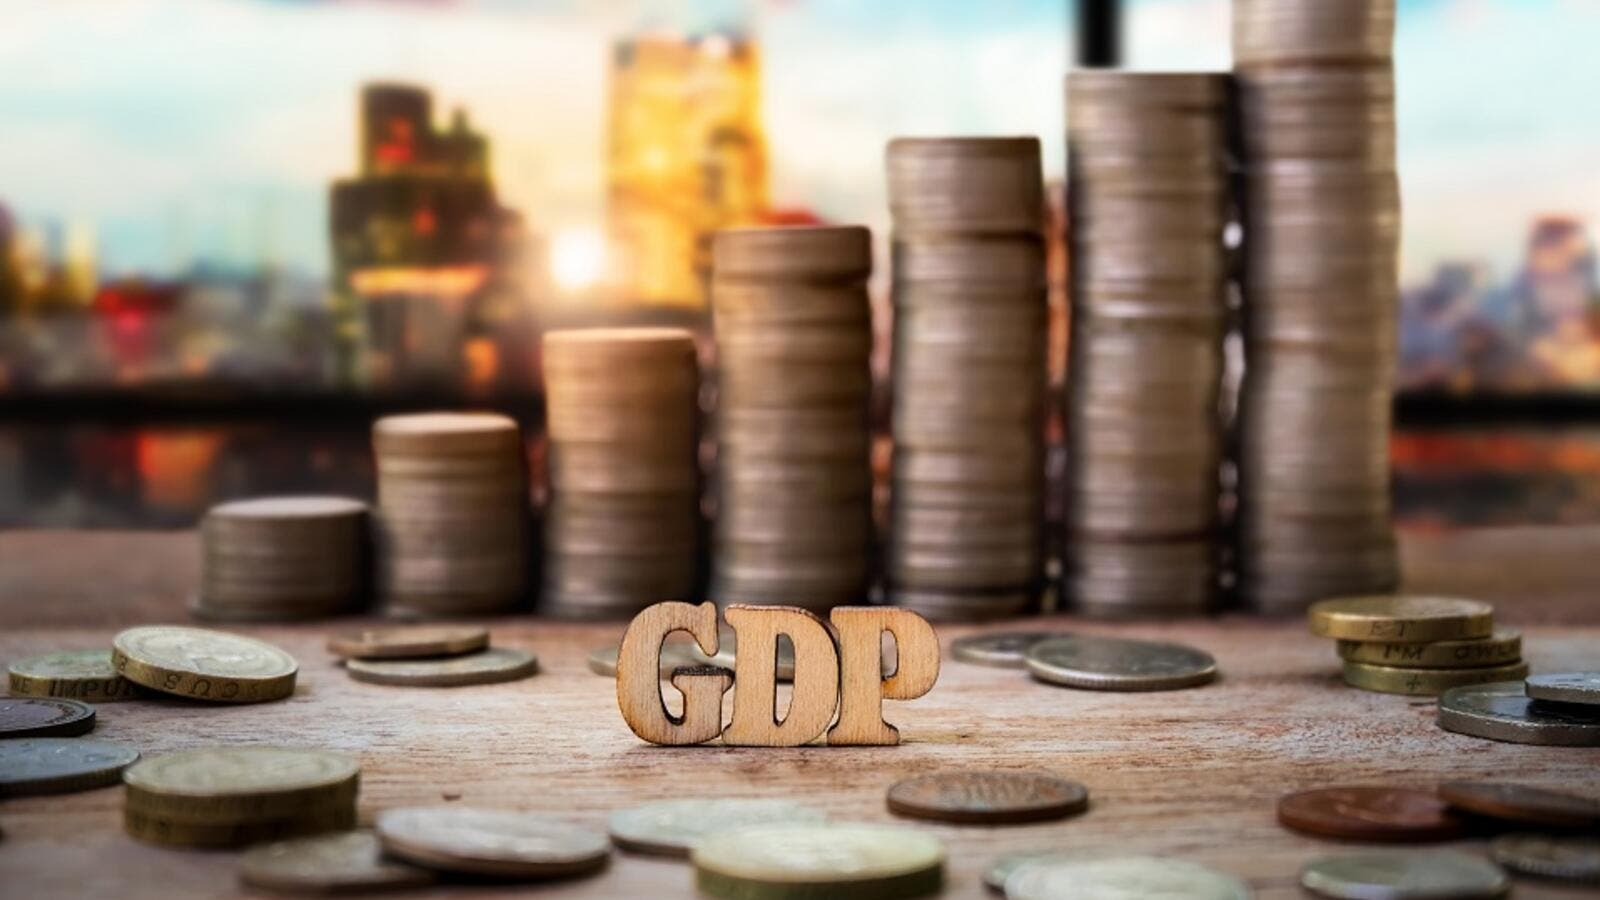 IMF had hiked the UAE's growth forecast for 2018 and 2019 on the back of higher oil prices. (Shutterstock)